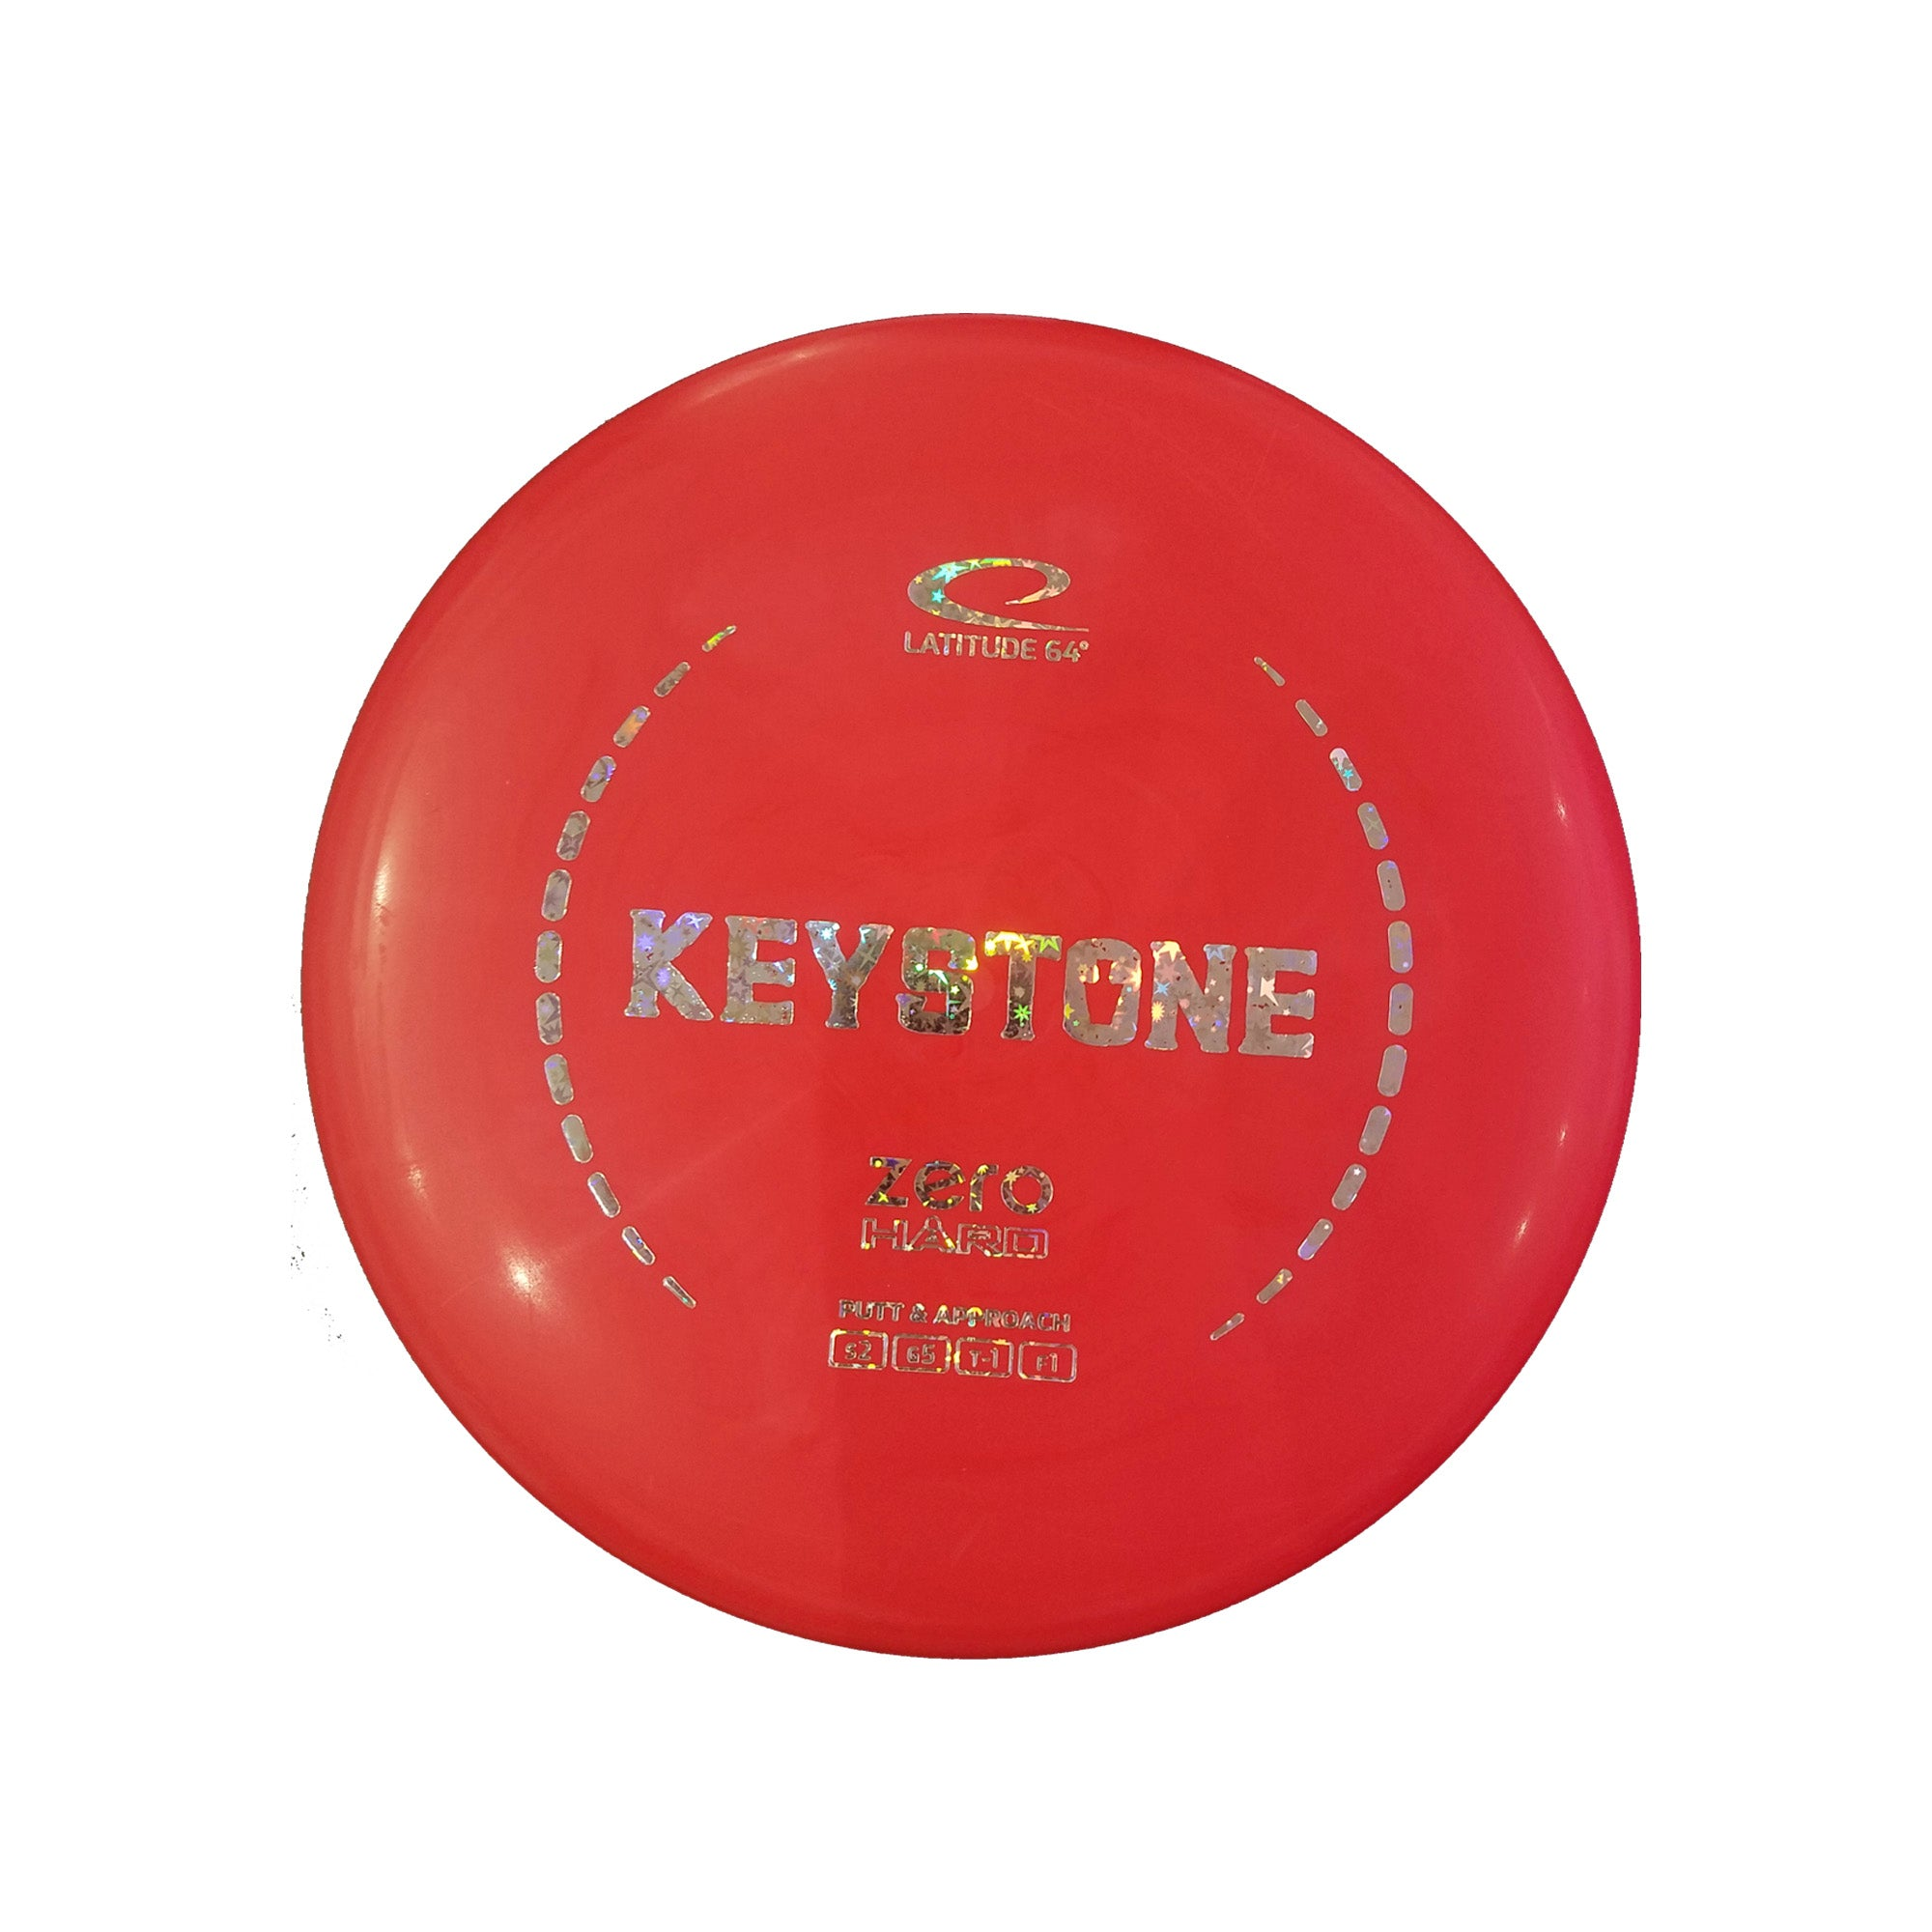 Latitude 64 Zero Hard Keystone Putter Disc - 174g